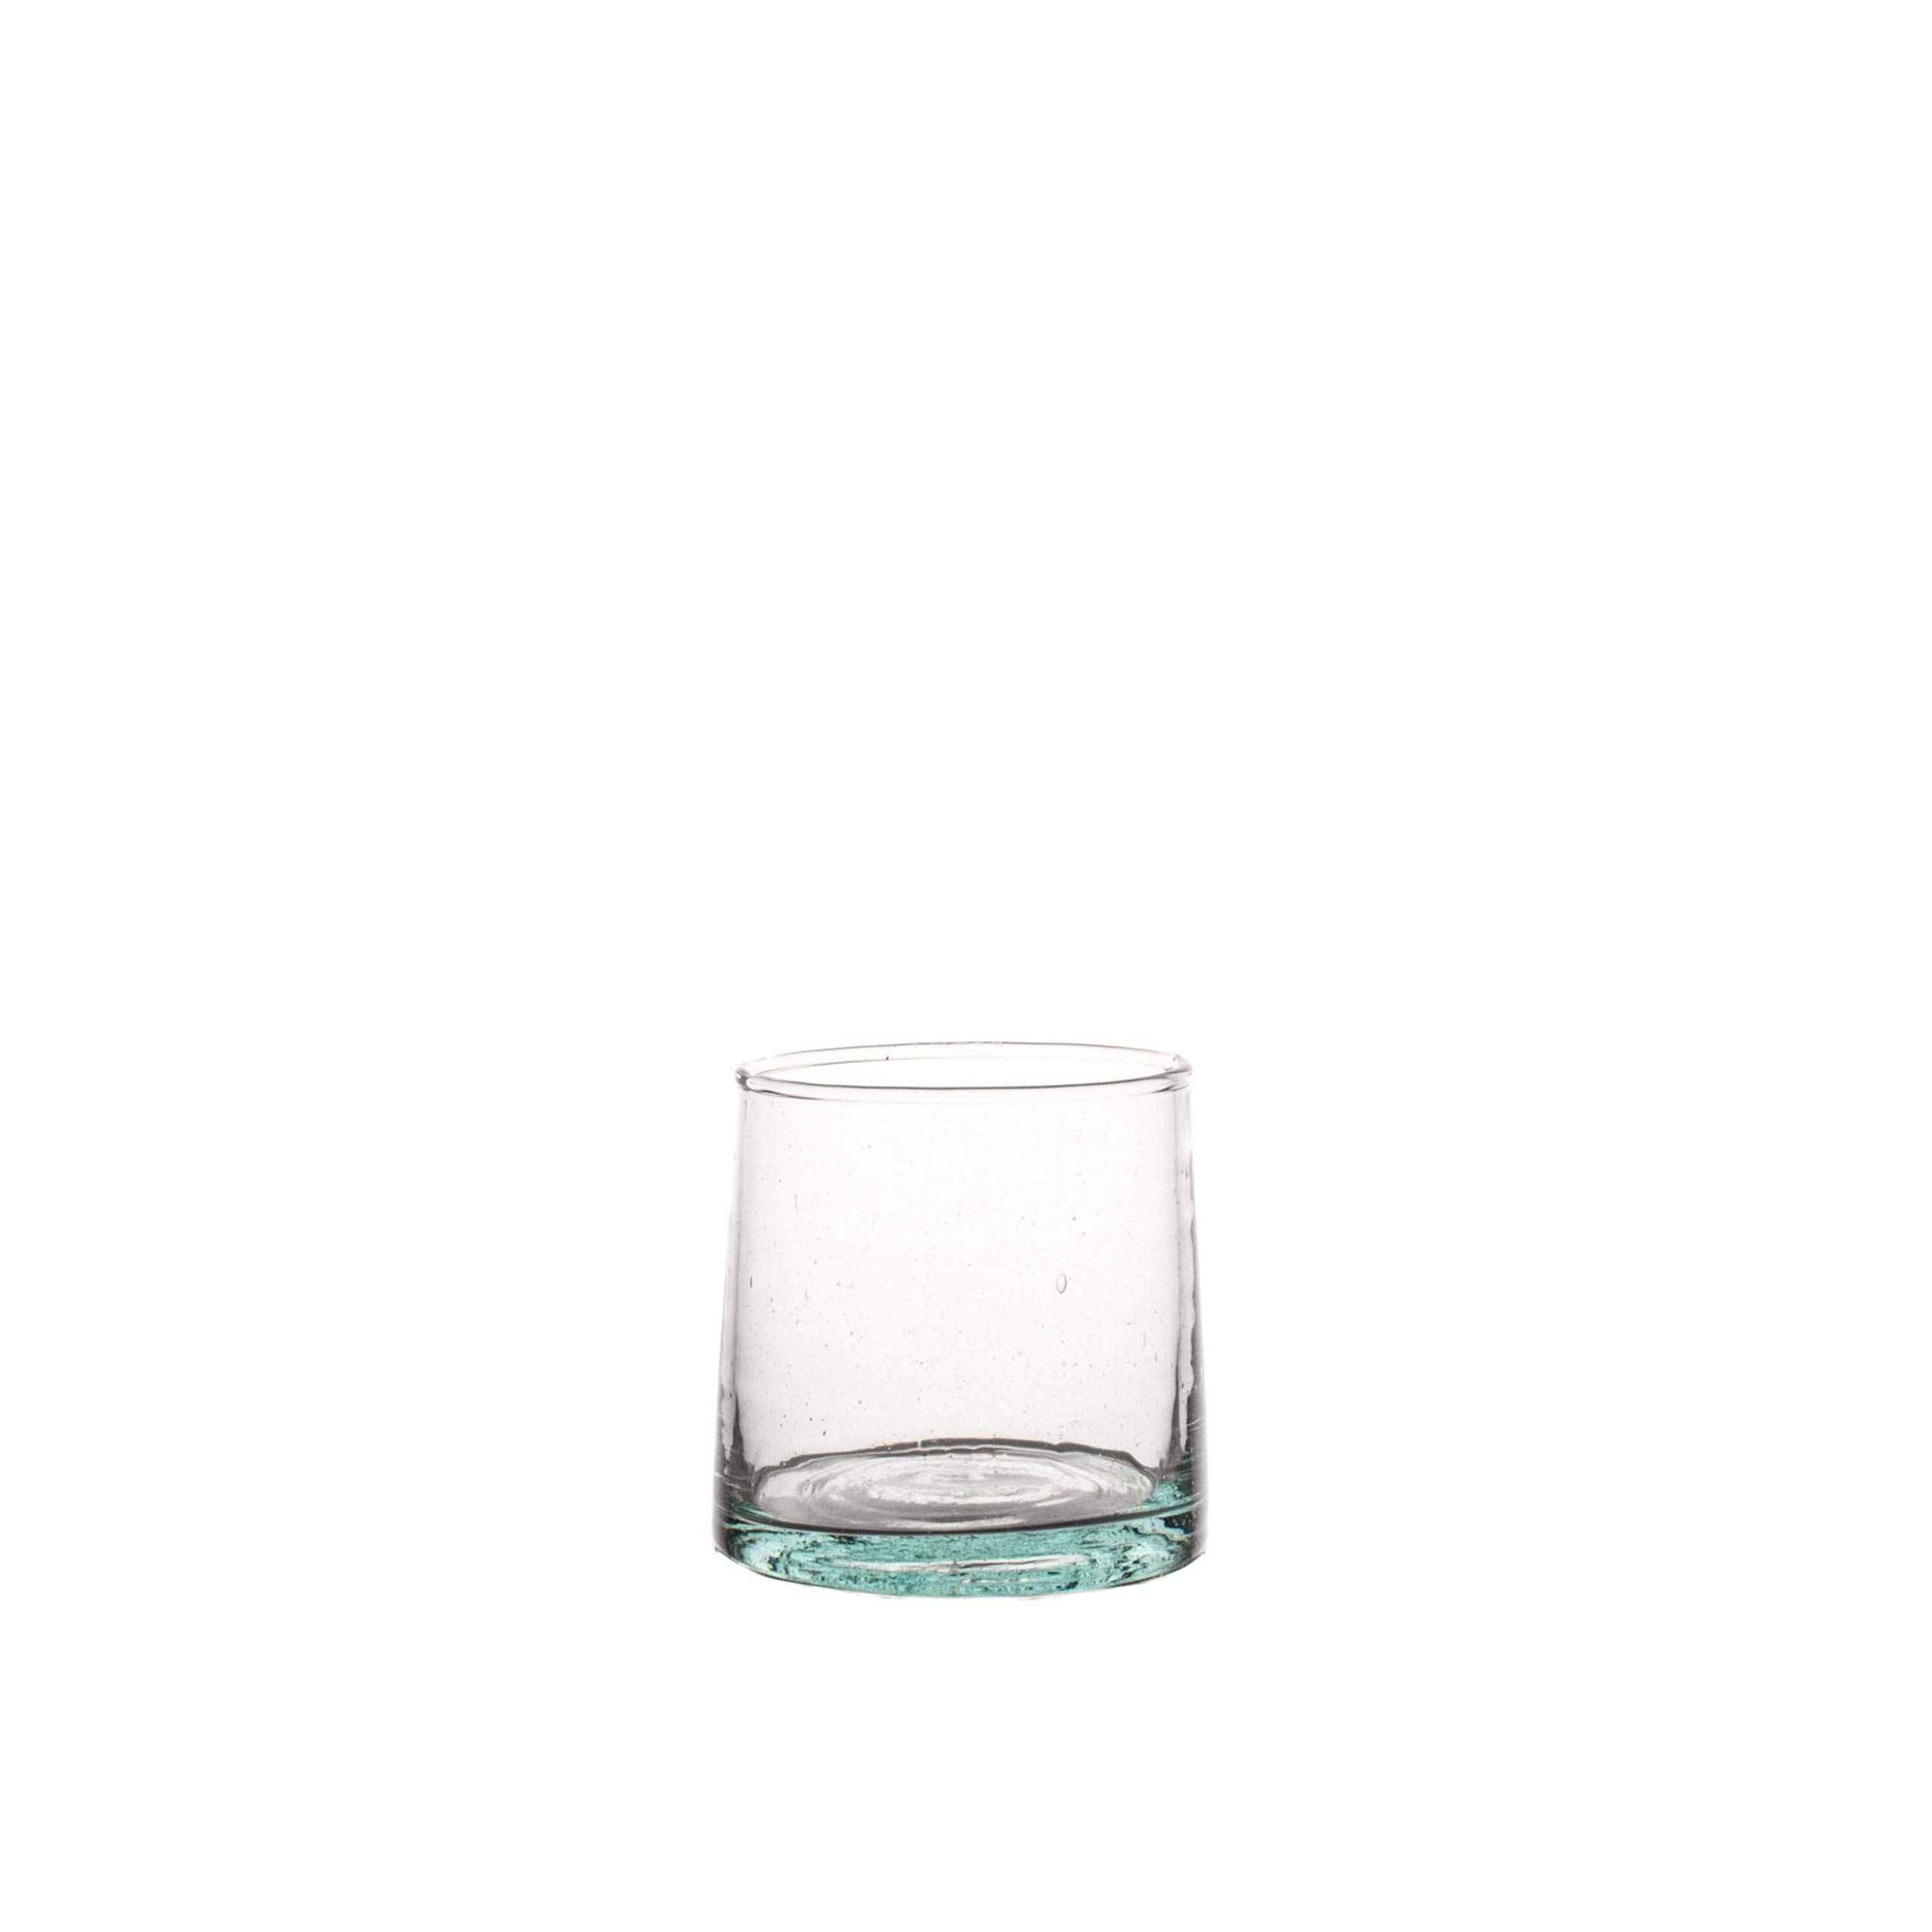 Canvas Home Ltd G12-CNL-SM Canvas Home Moroccan Conical Glass, Small, Tinted Green-Pack of 6